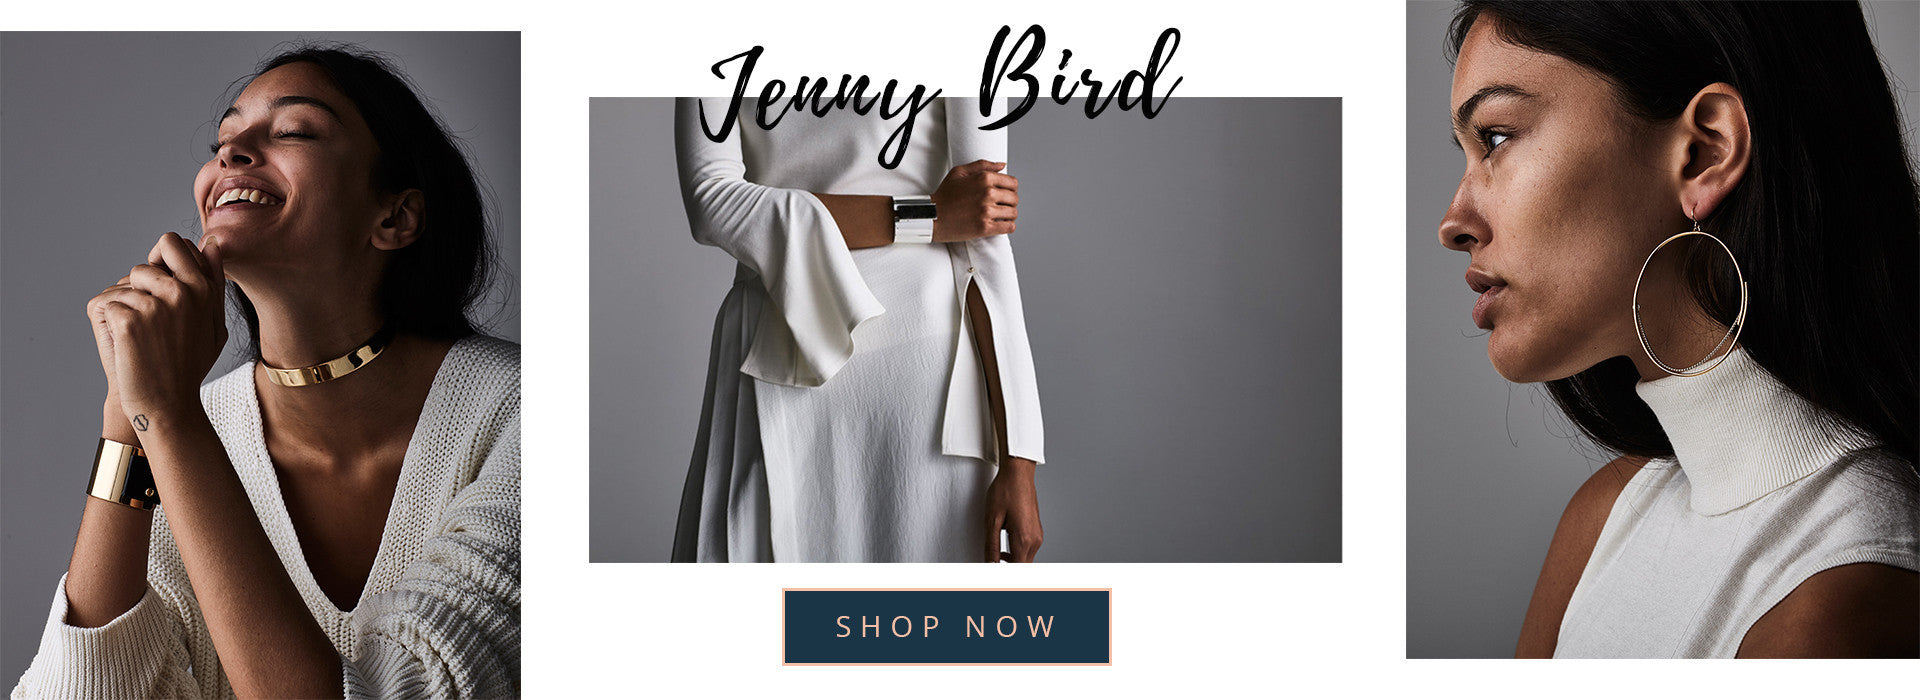 JENNY BIRD, JENNY BIRD JEWELRY, JENNY BIRD WINTER COLLECTION, JEWELRY, JENNY BIRD EARRINGS, JENNY BIRD NECKLACES, JENNY BIRD CUFFS